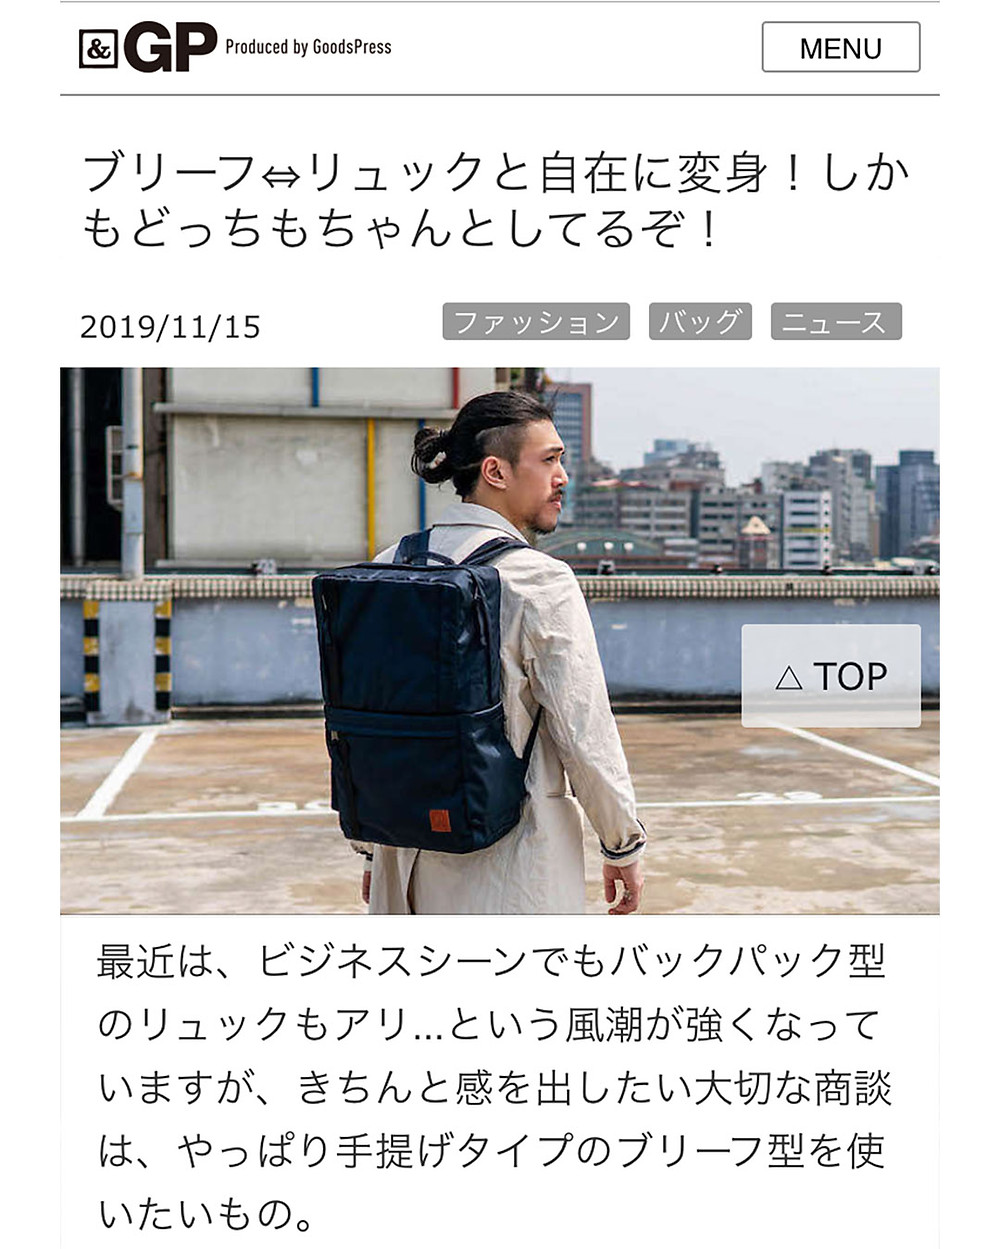 FREESTONE Briefpack is reported by GoodsPress.jp